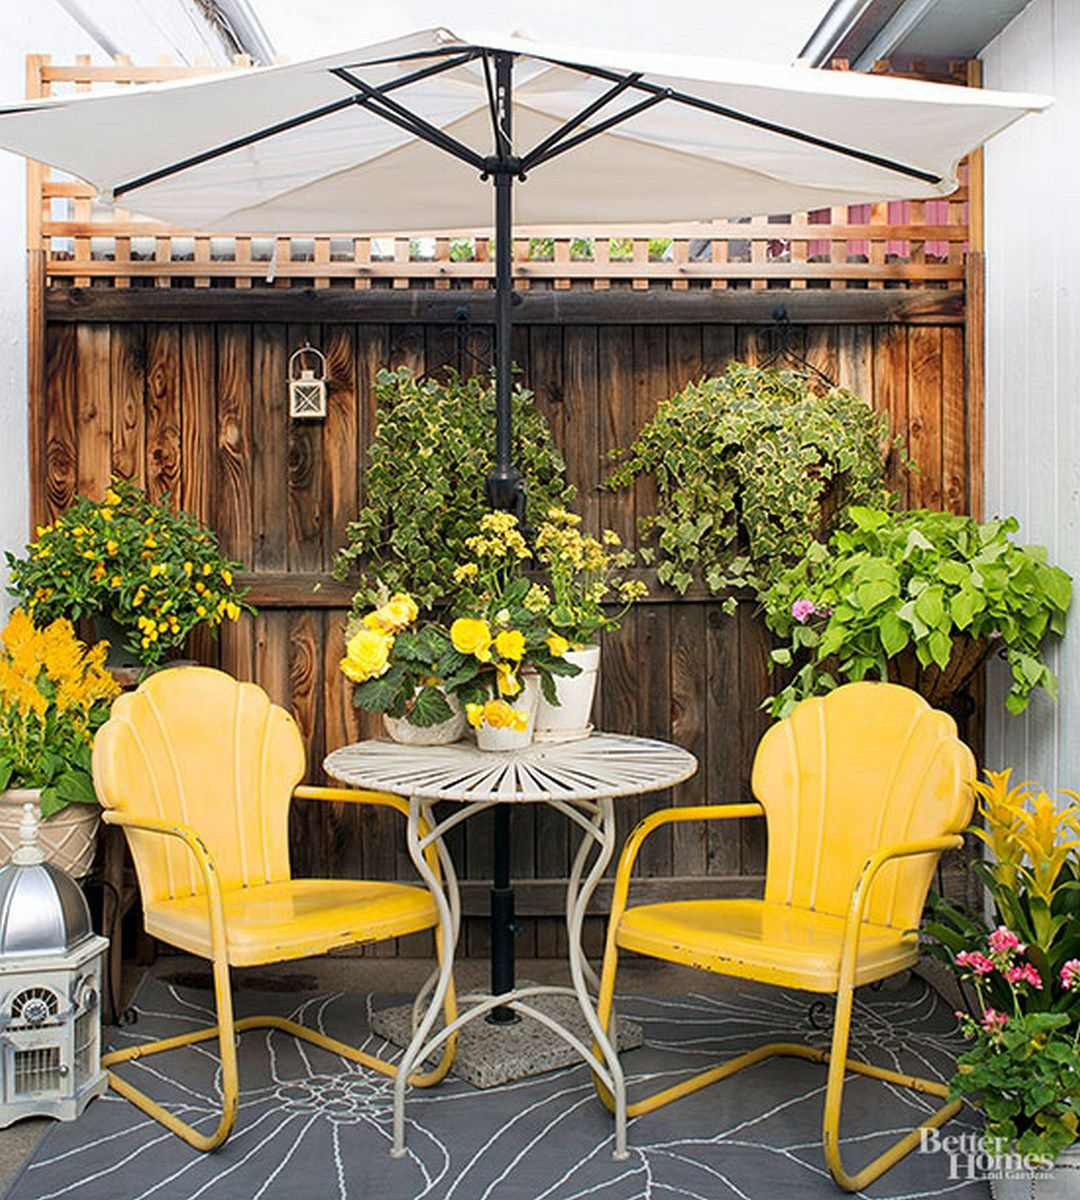 Diy Easy Landscaping Ideas With Low Budget: 102 DIY Simple Small Backyard On A Budget Makeovers Ideas